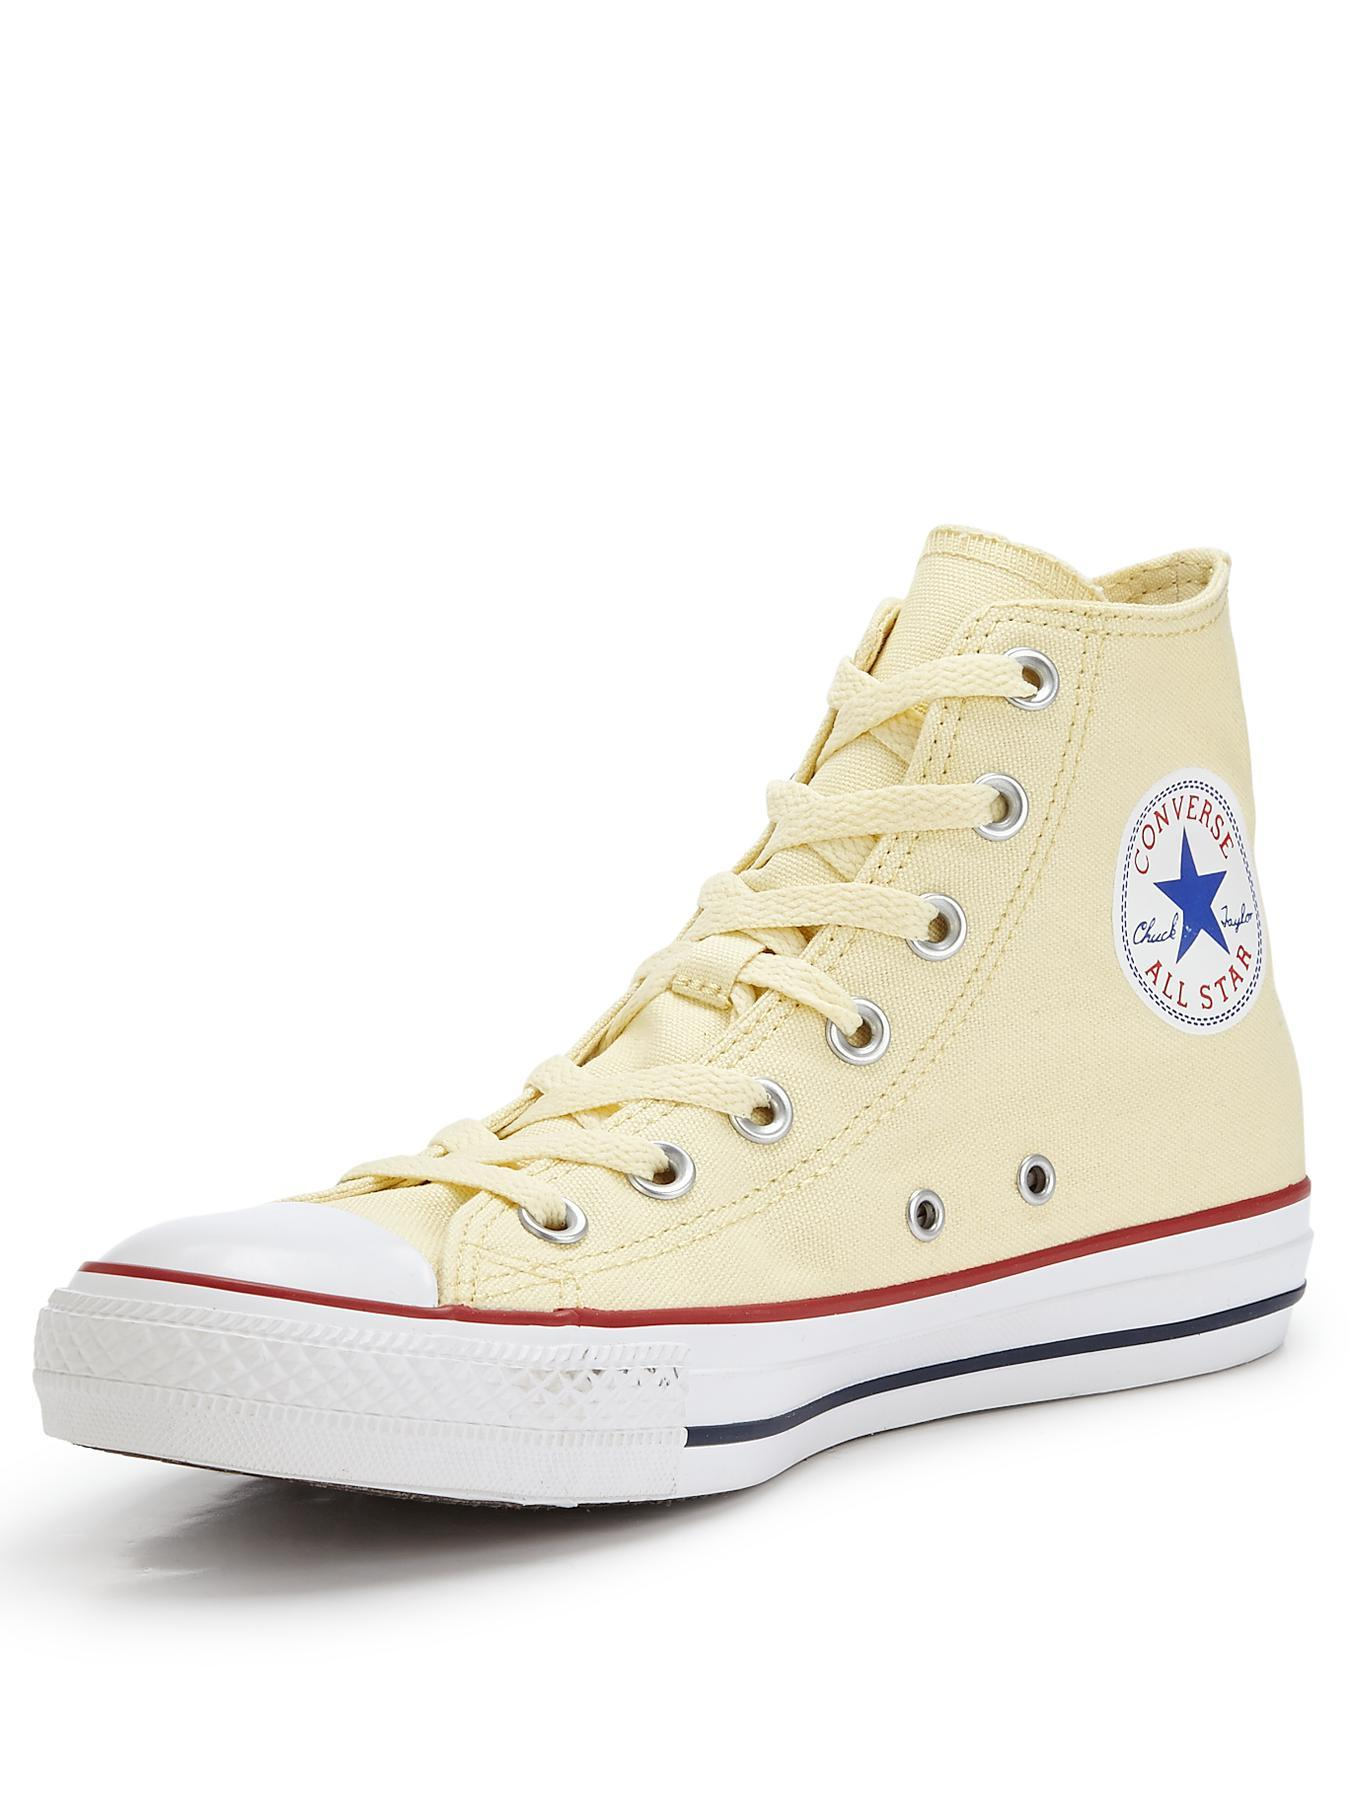 Chuck Taylor All Star Core Hi Top Plimsolls, White